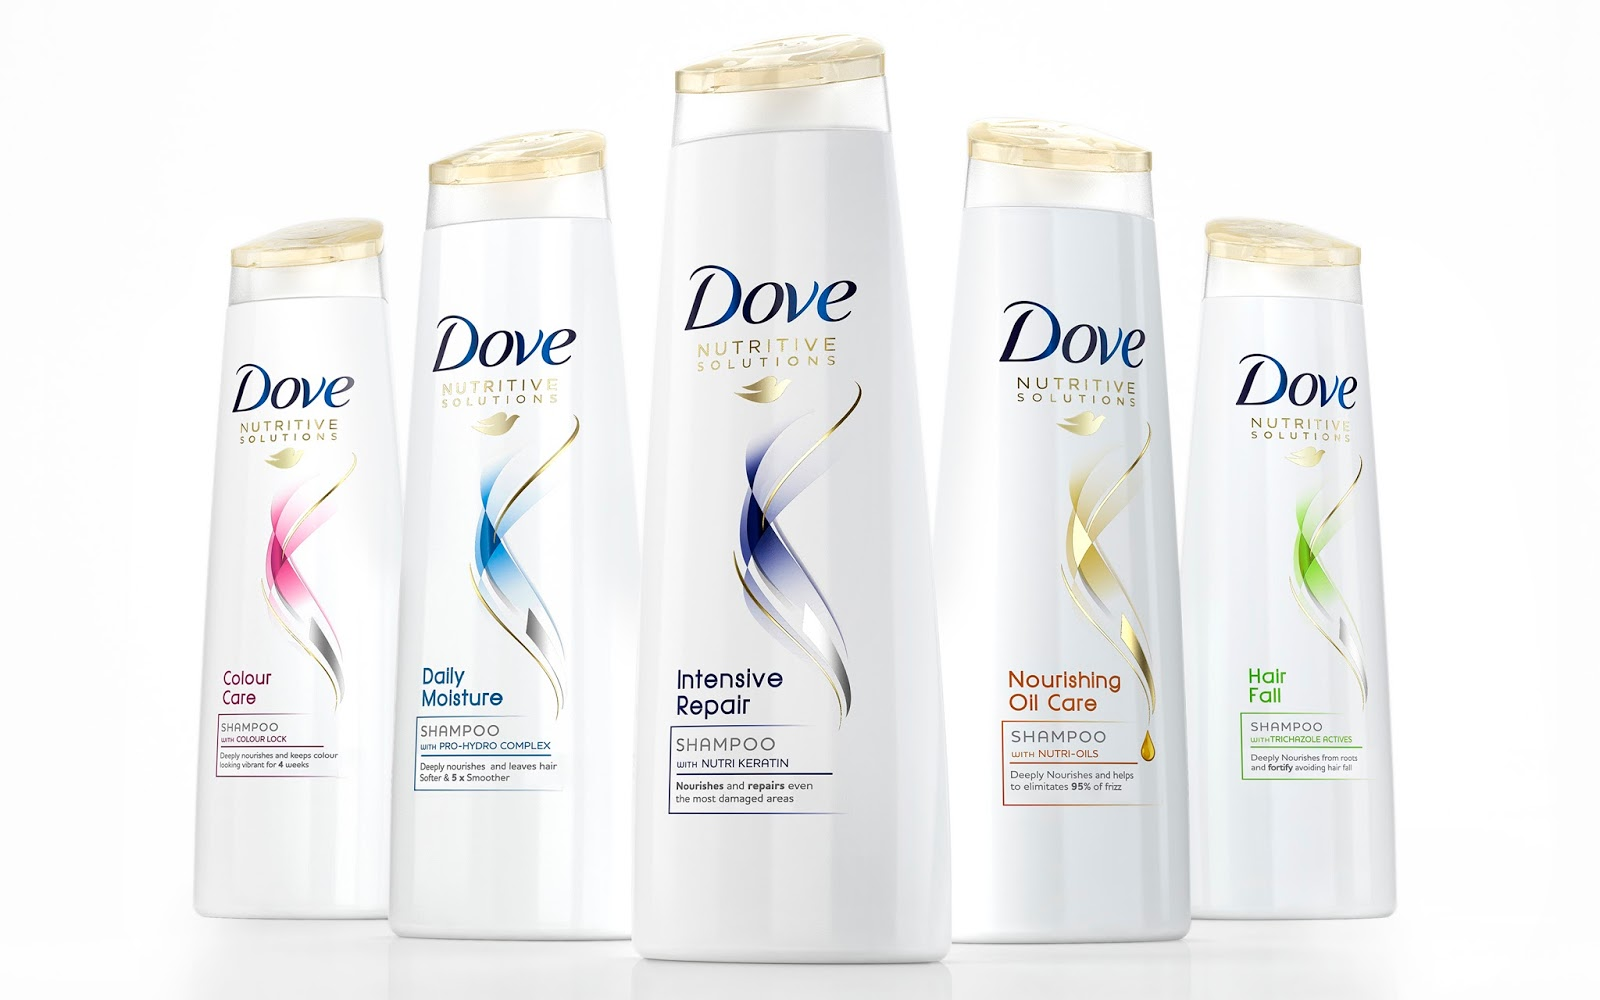 project dove shampoo The ad hopes to connect body-type dispassion with the dove brand,  personal- care products like soap, deodorant, lotion, and shampoo.